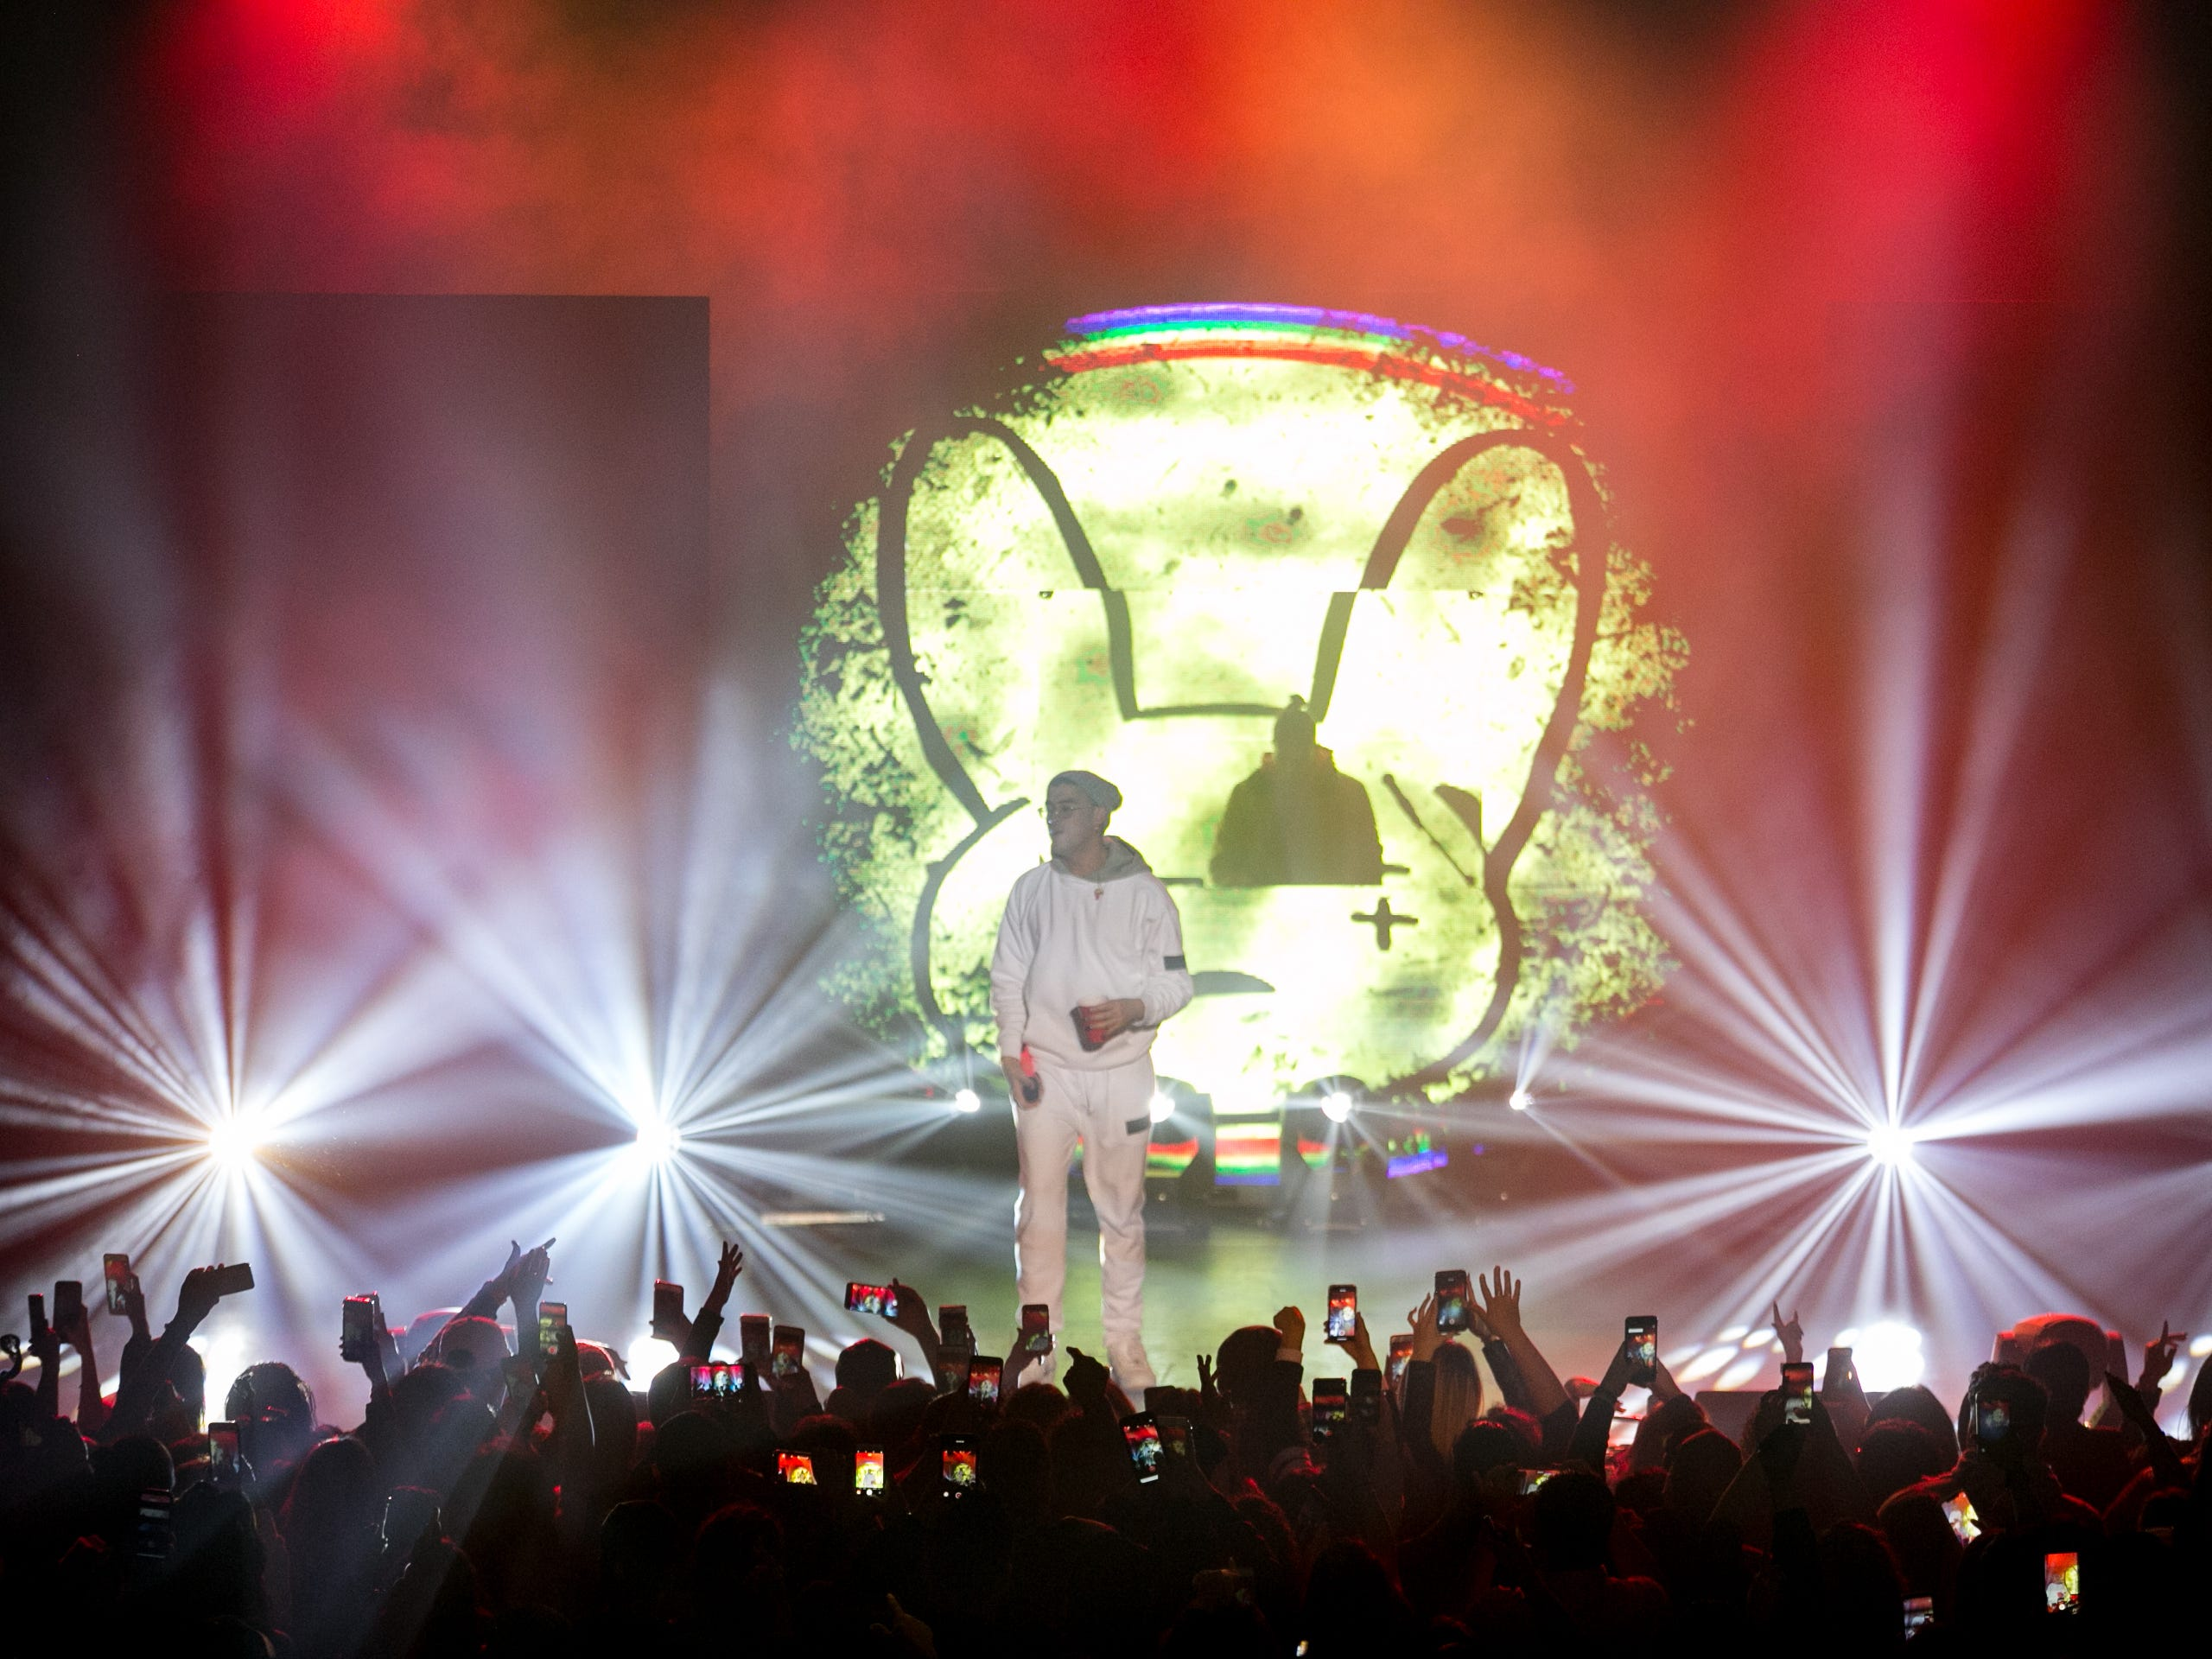 Bad Bunny performs at the Rave's Eagles Ballroom in Milwaukee on Nov. 23, 2018.